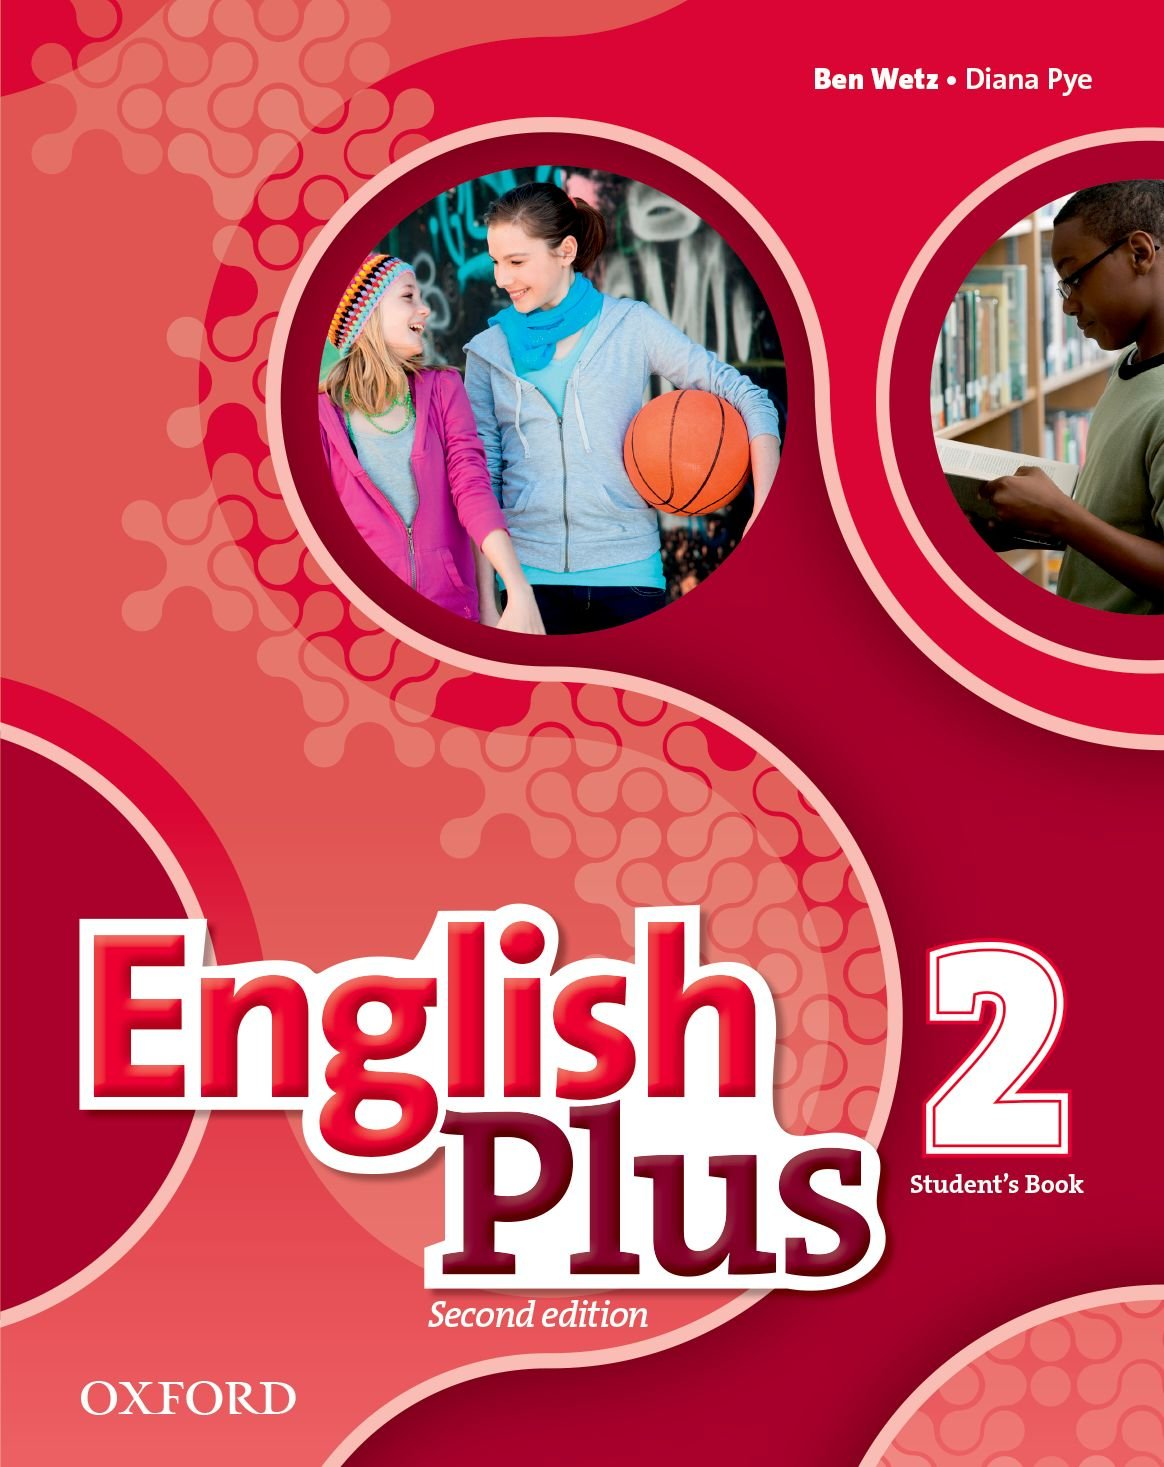 ENGLISH PLUS 2 2ED Student's Book